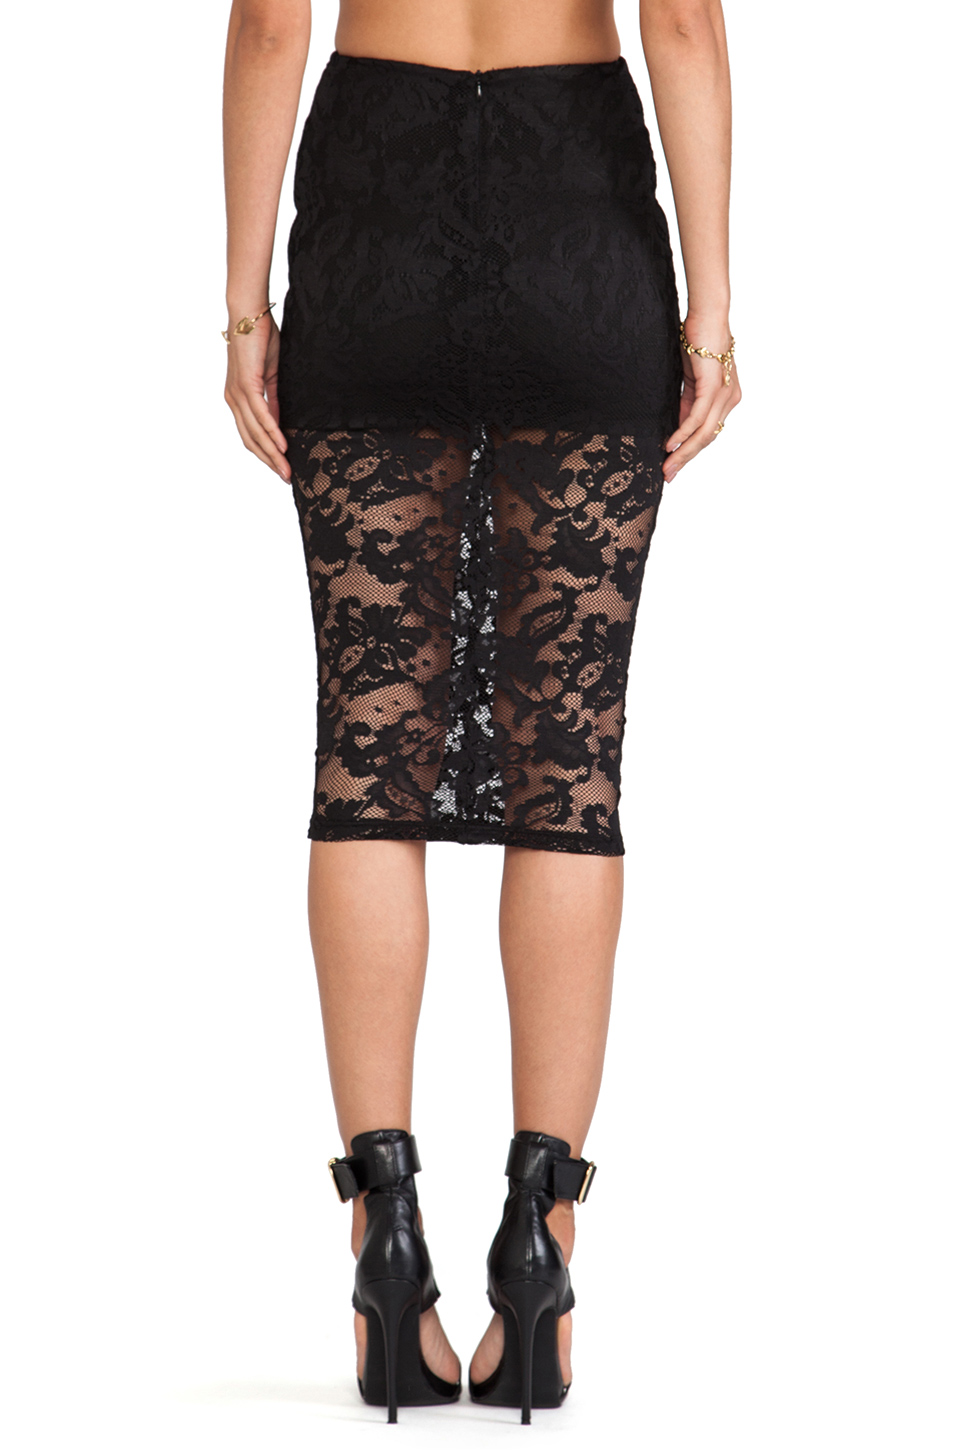 White Lace Pencil Skirt River Island